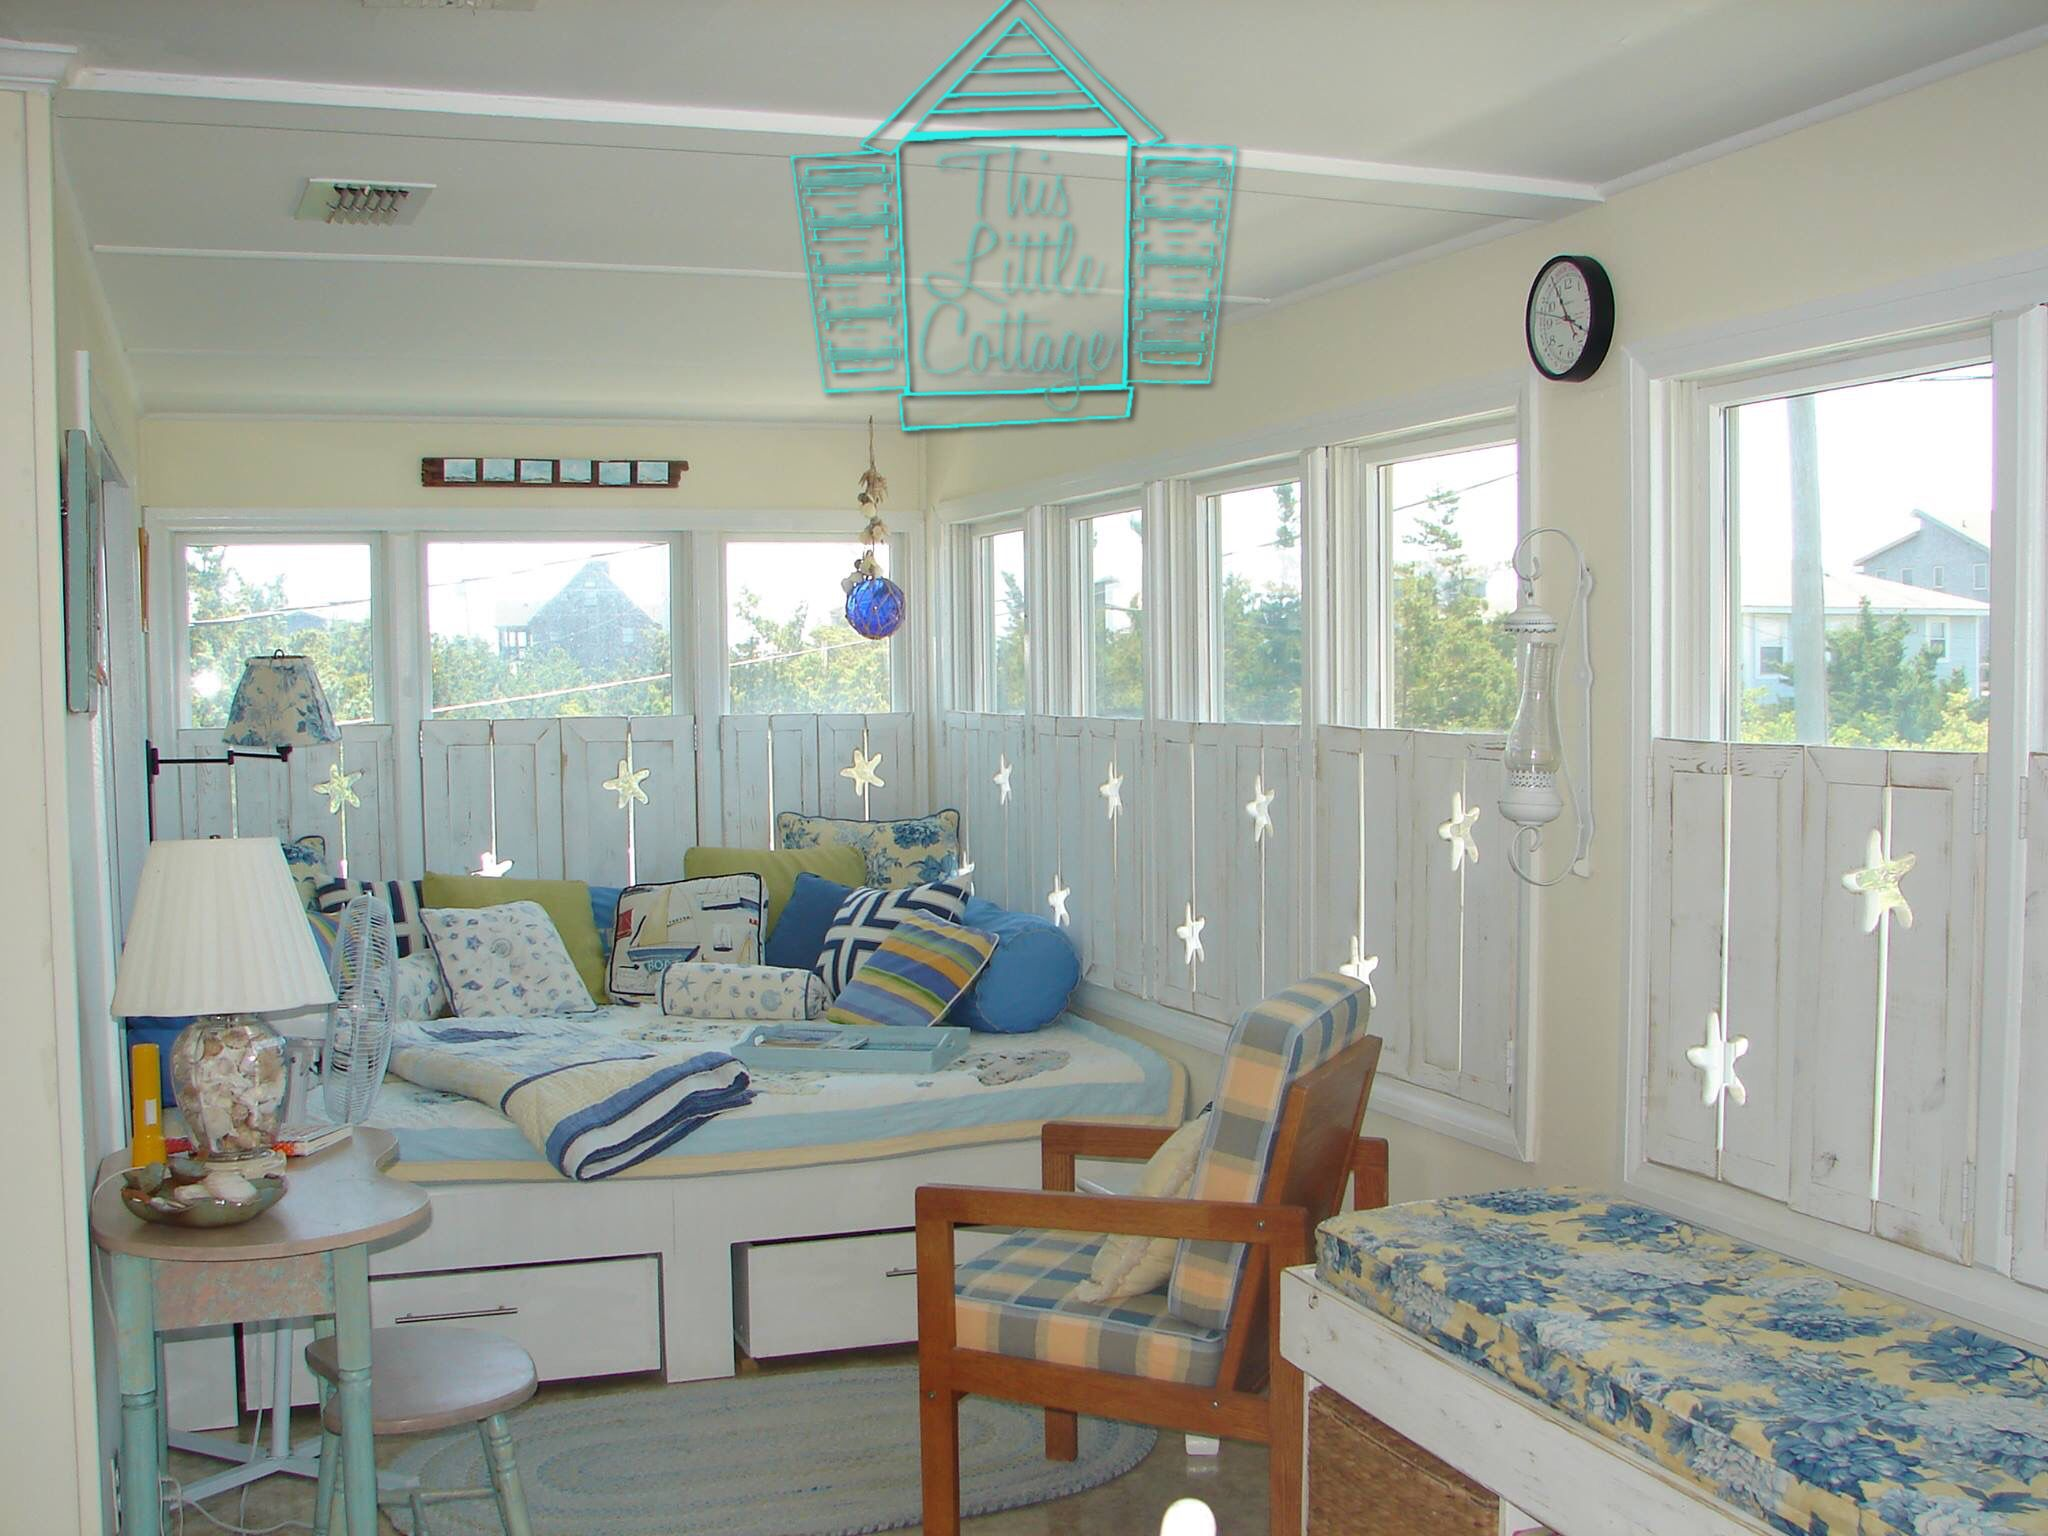 Custom Shutters By This Little Cottage OBX. Hatteras, North Carolina.